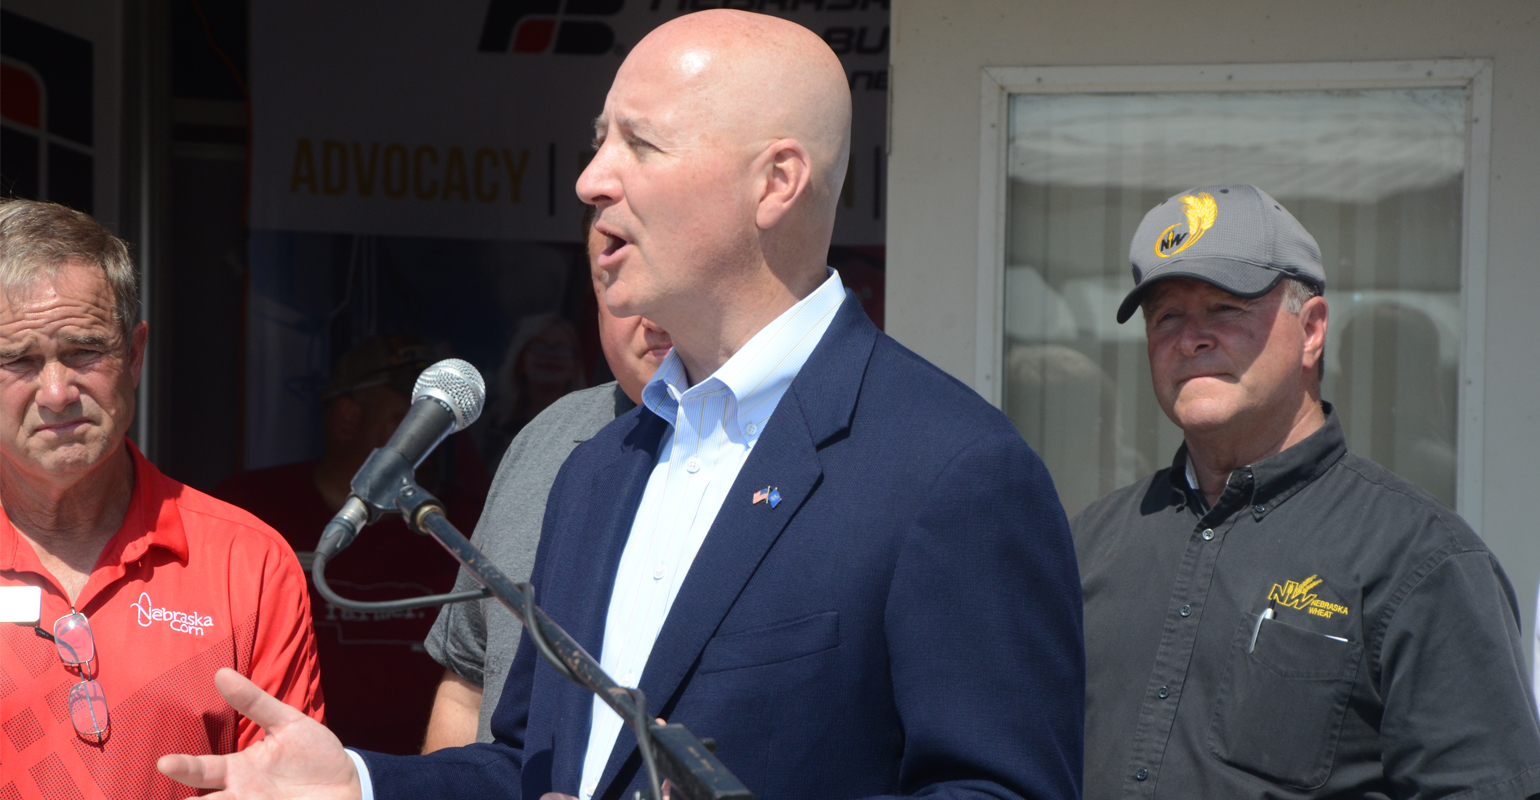 : Nebraska Gov. Pete Ricketts noted Mexico and Canada top the list of markets for ag products from Nebraska and the U.S.